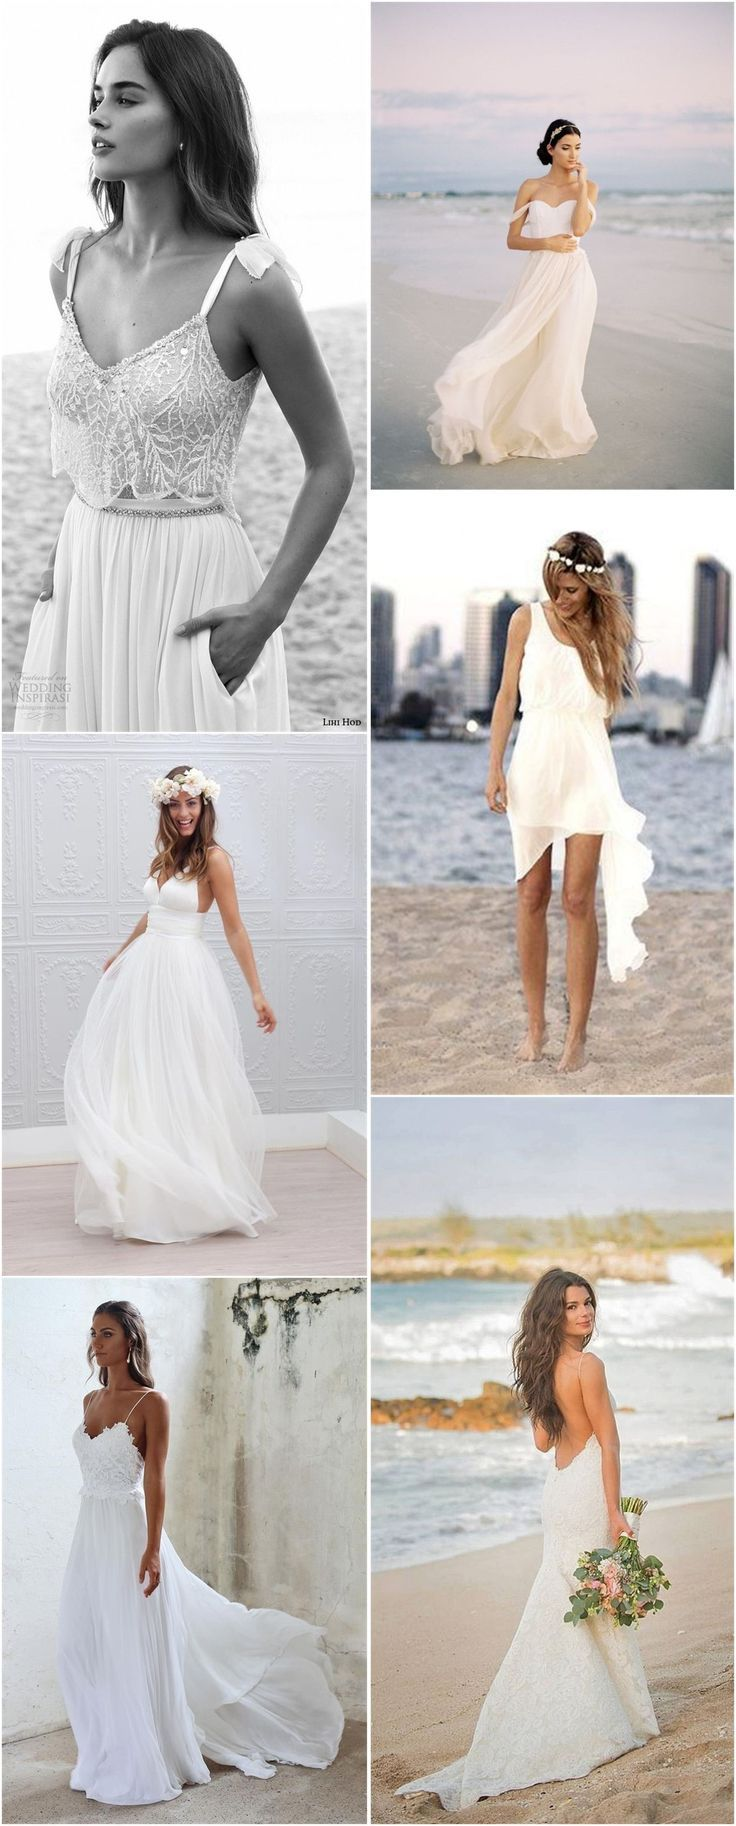 Top 22 Beach Wedding Dresses Ideas to Stand You out | Hochzeitskleid ...